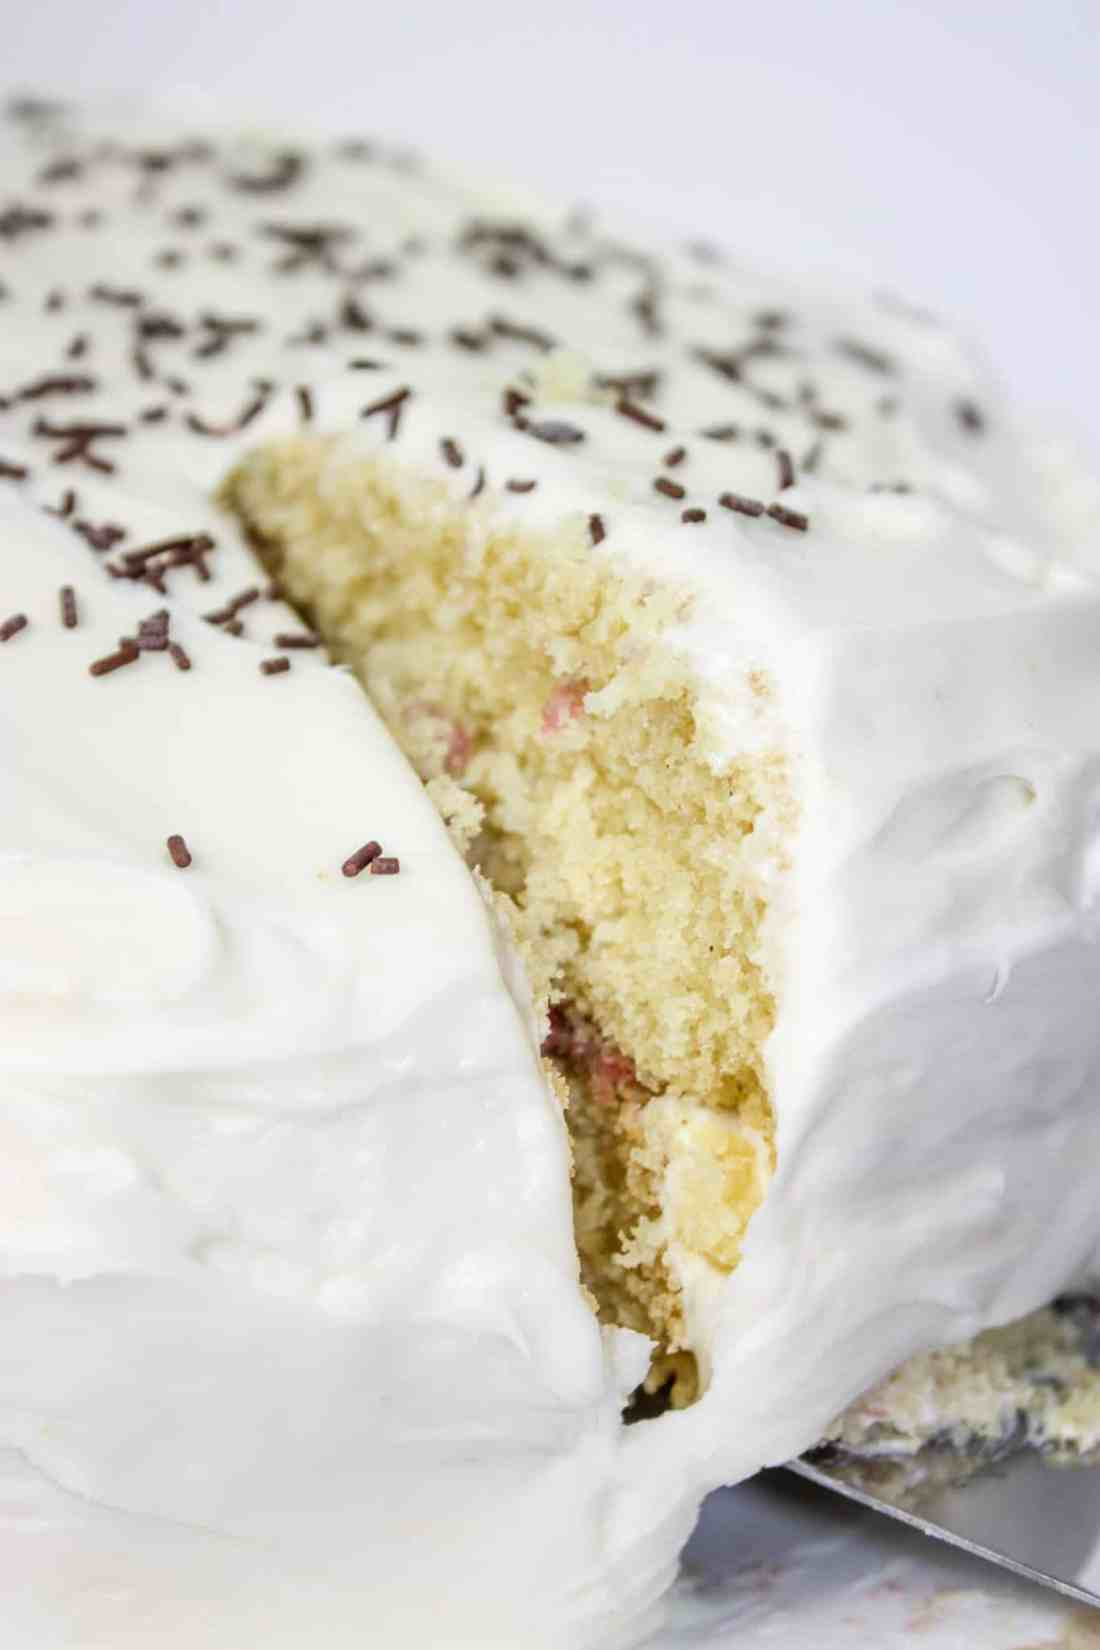 Gluten Free Vanilla Cake is an easy and very tasty dessert recipe that can be decorated, after baking, to suit any occasion.